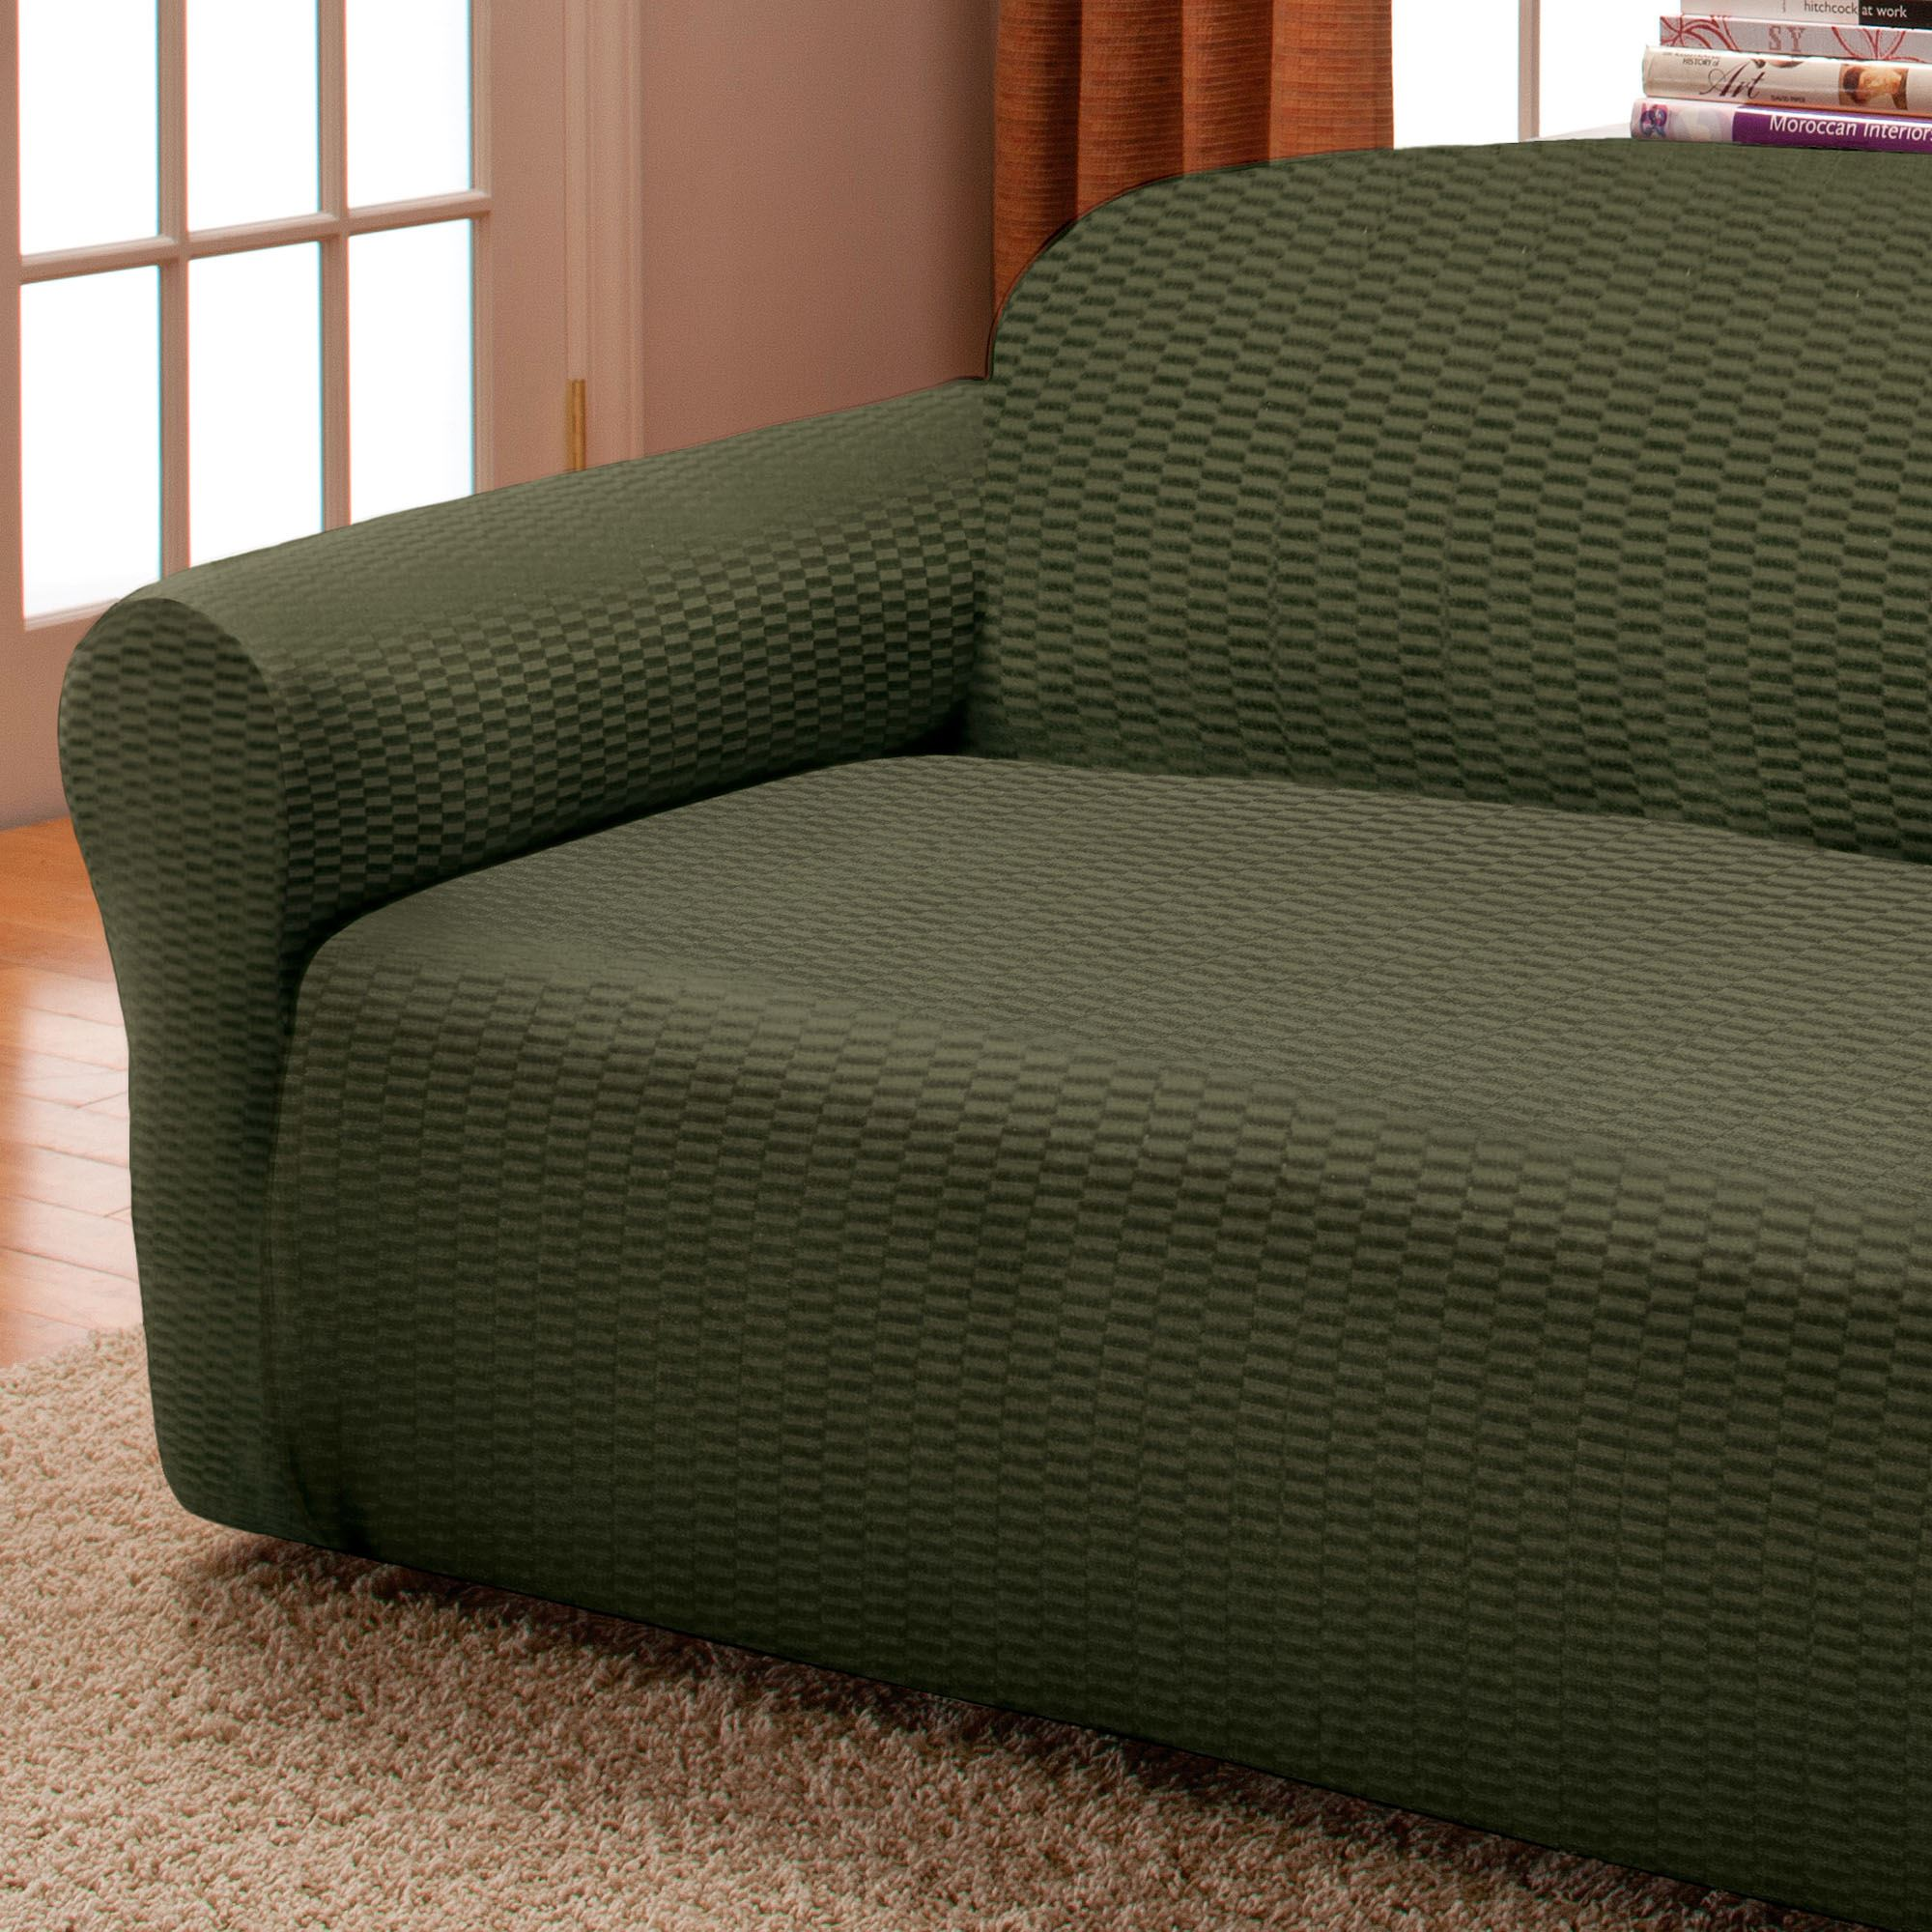 Stretch slipcover sofa how to install a 2 piece stretch slipcover by caber sure fit inc thesofa Loveseat stretch slipcovers